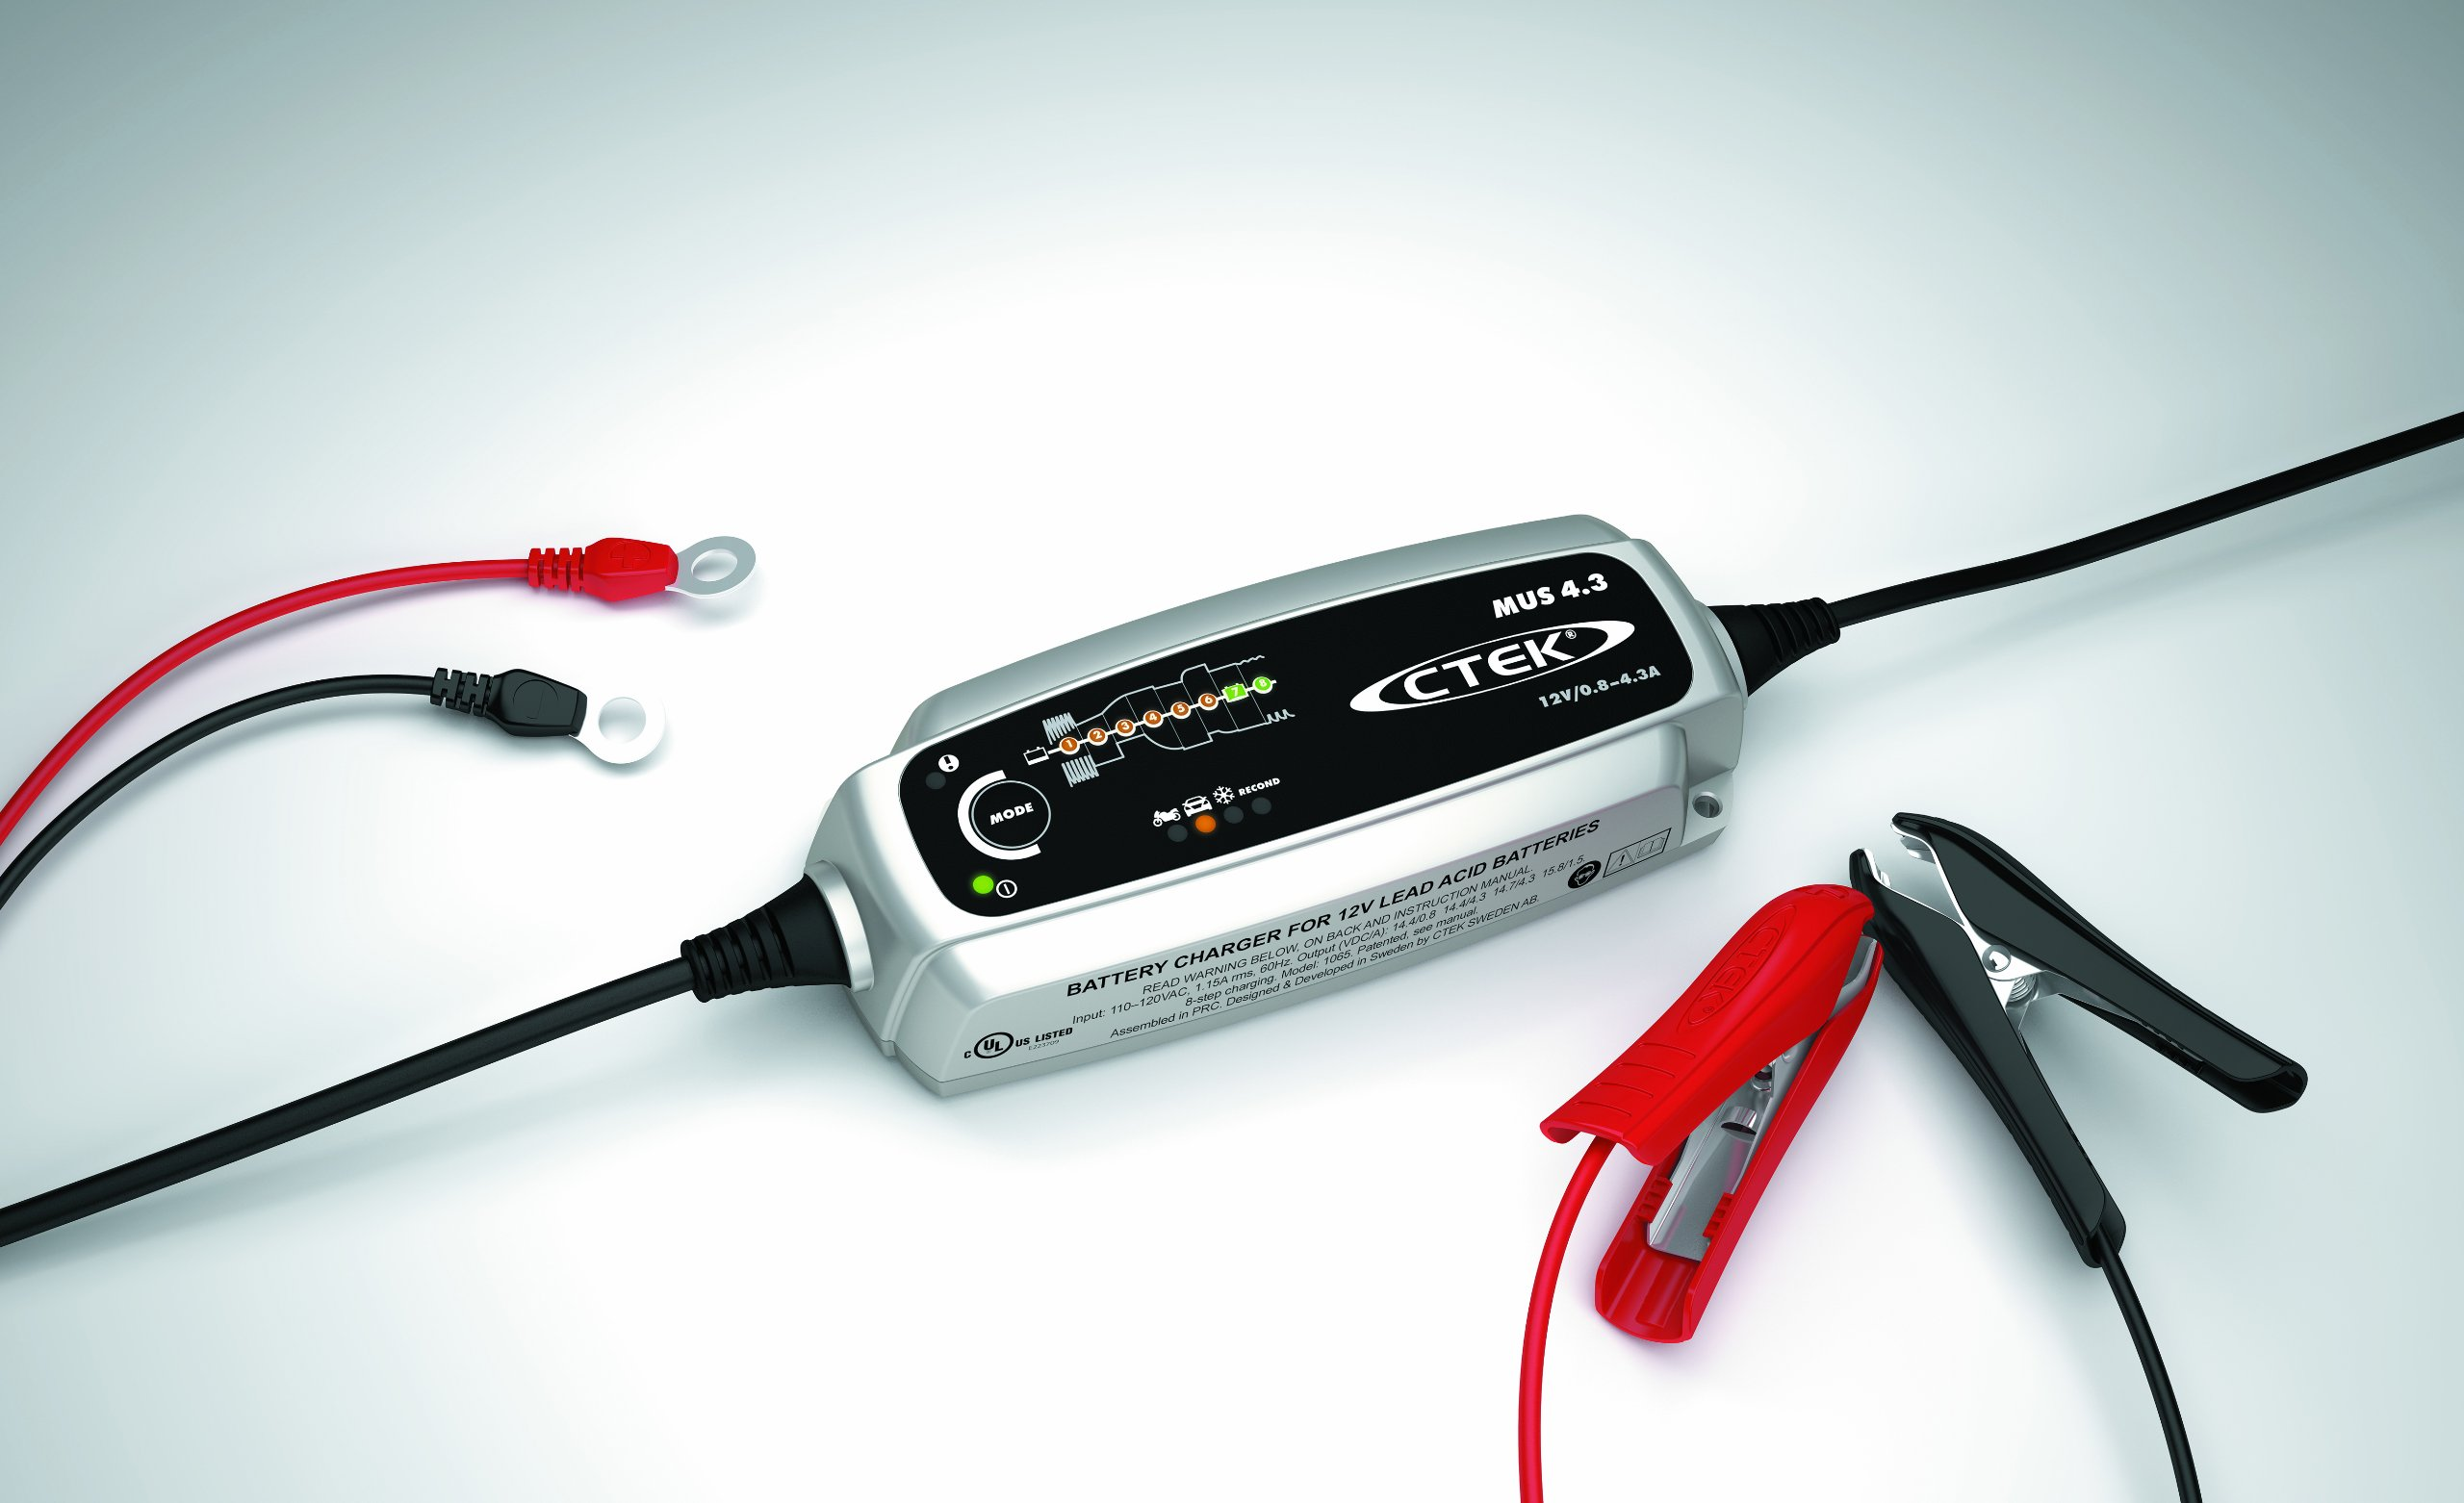 CTEK (56-864) MUS4.3 12 Volt Fully Automatic 8 Step Battery Charger